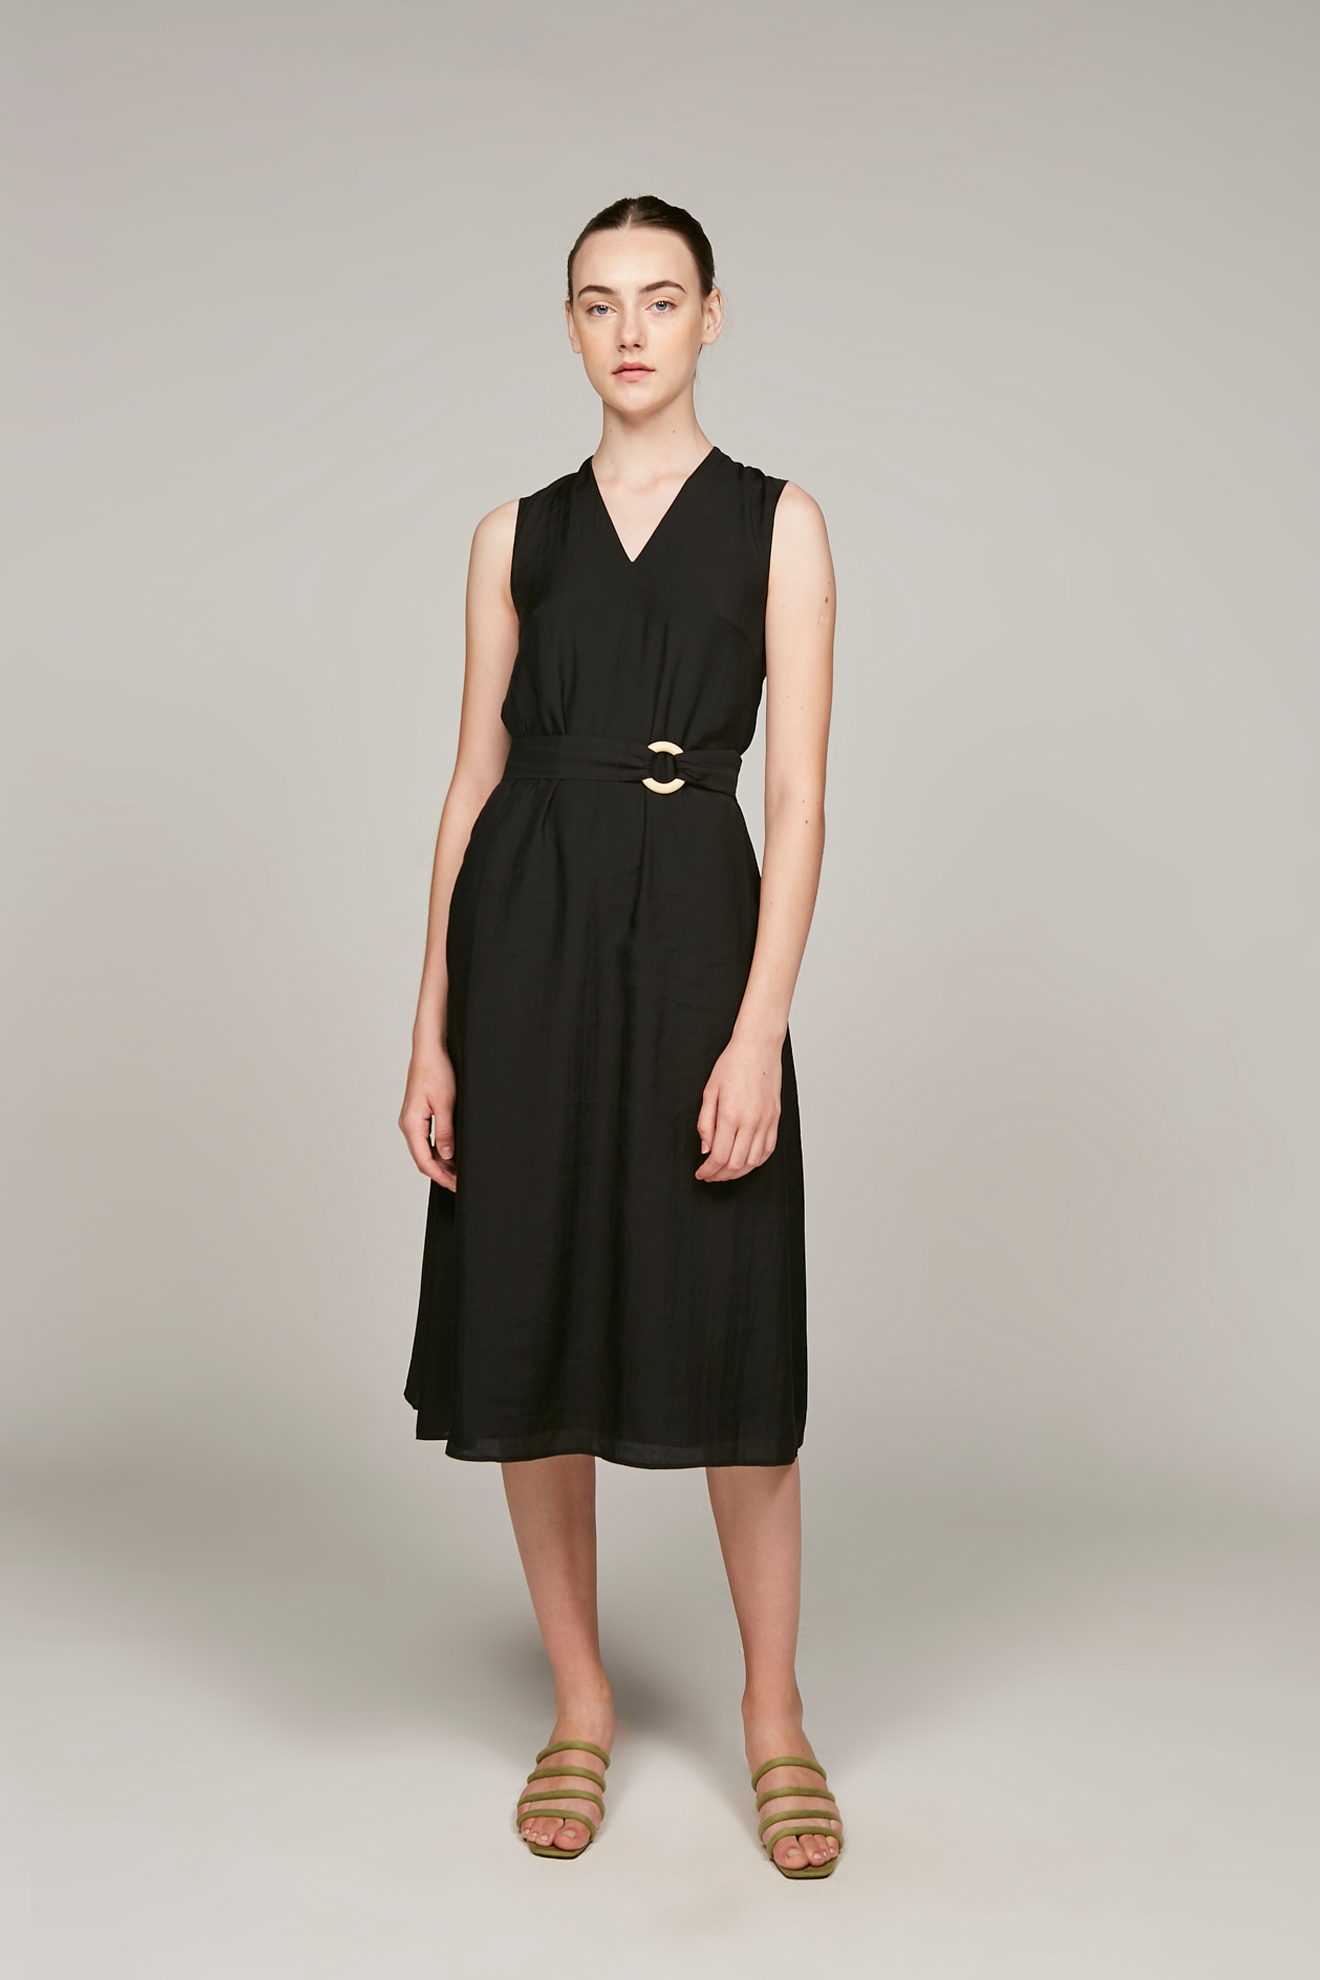 Loop Buckle Midi Dress